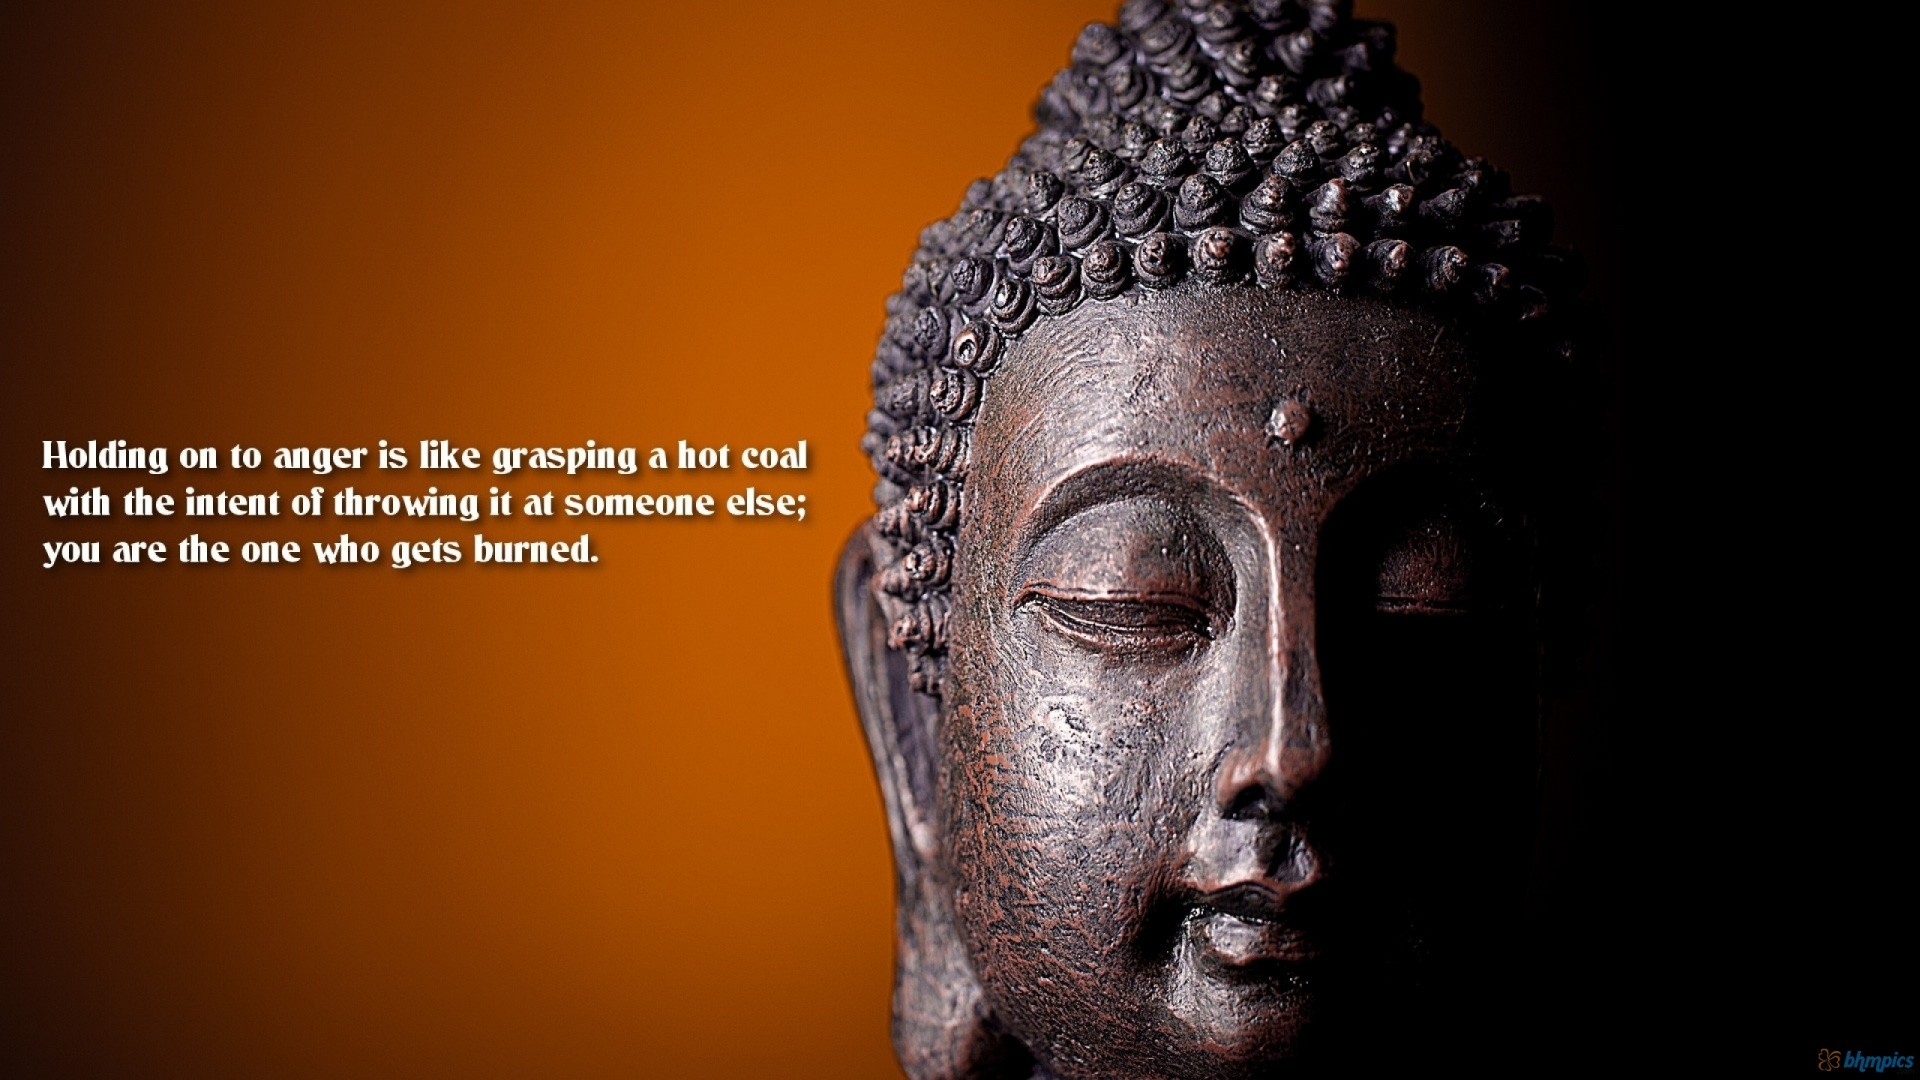 Buddha Wallpaper Images & Pictures – Becuo